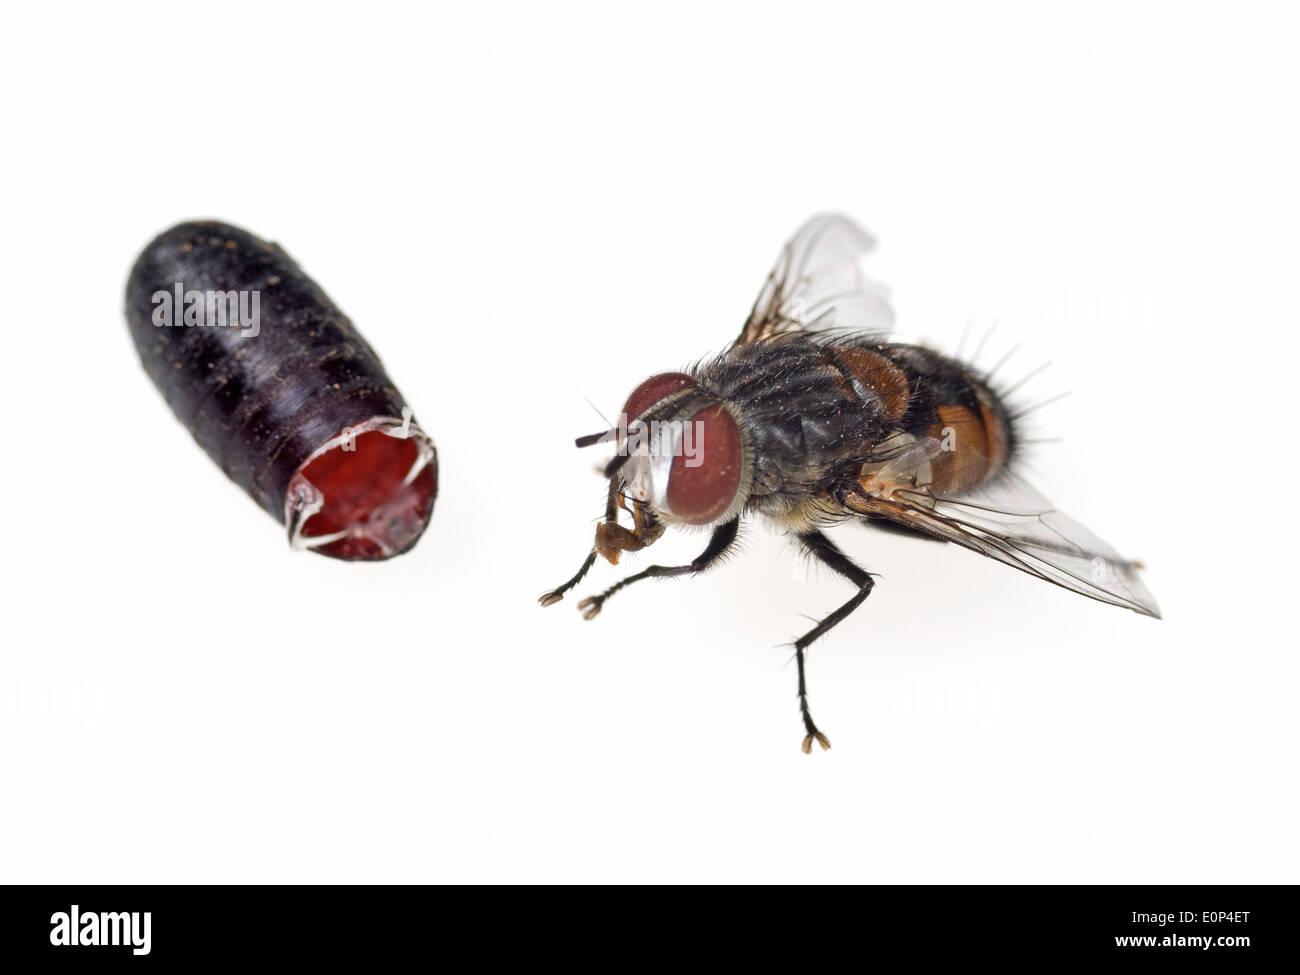 Tachinid fly and the pupa from which it emerged - Stock Image